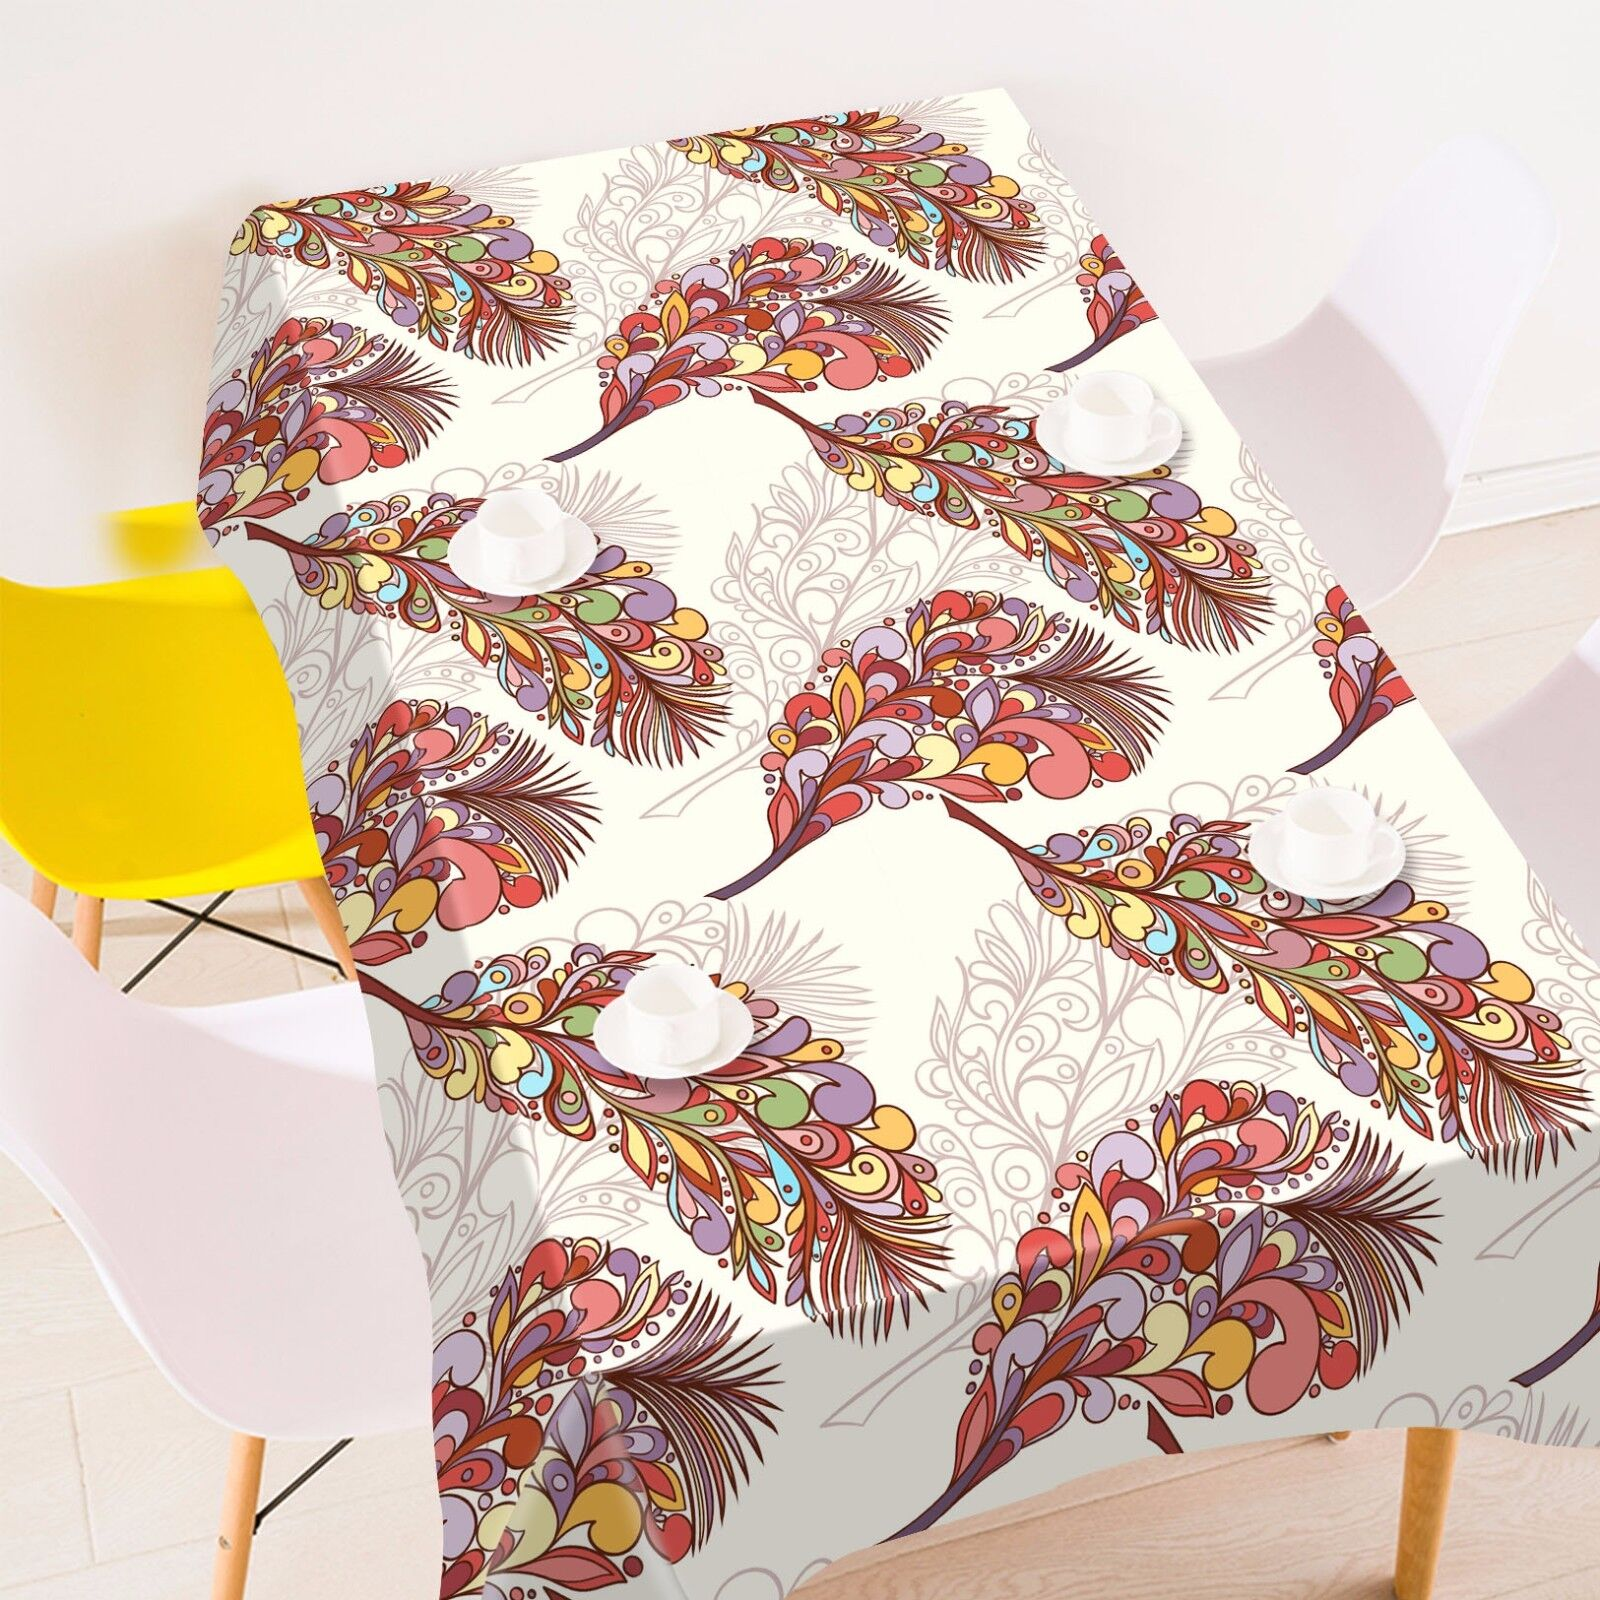 3D Feather Tablecloth Table Cover Cloth Birthday Party AJ WALLPAPER UK Lemon